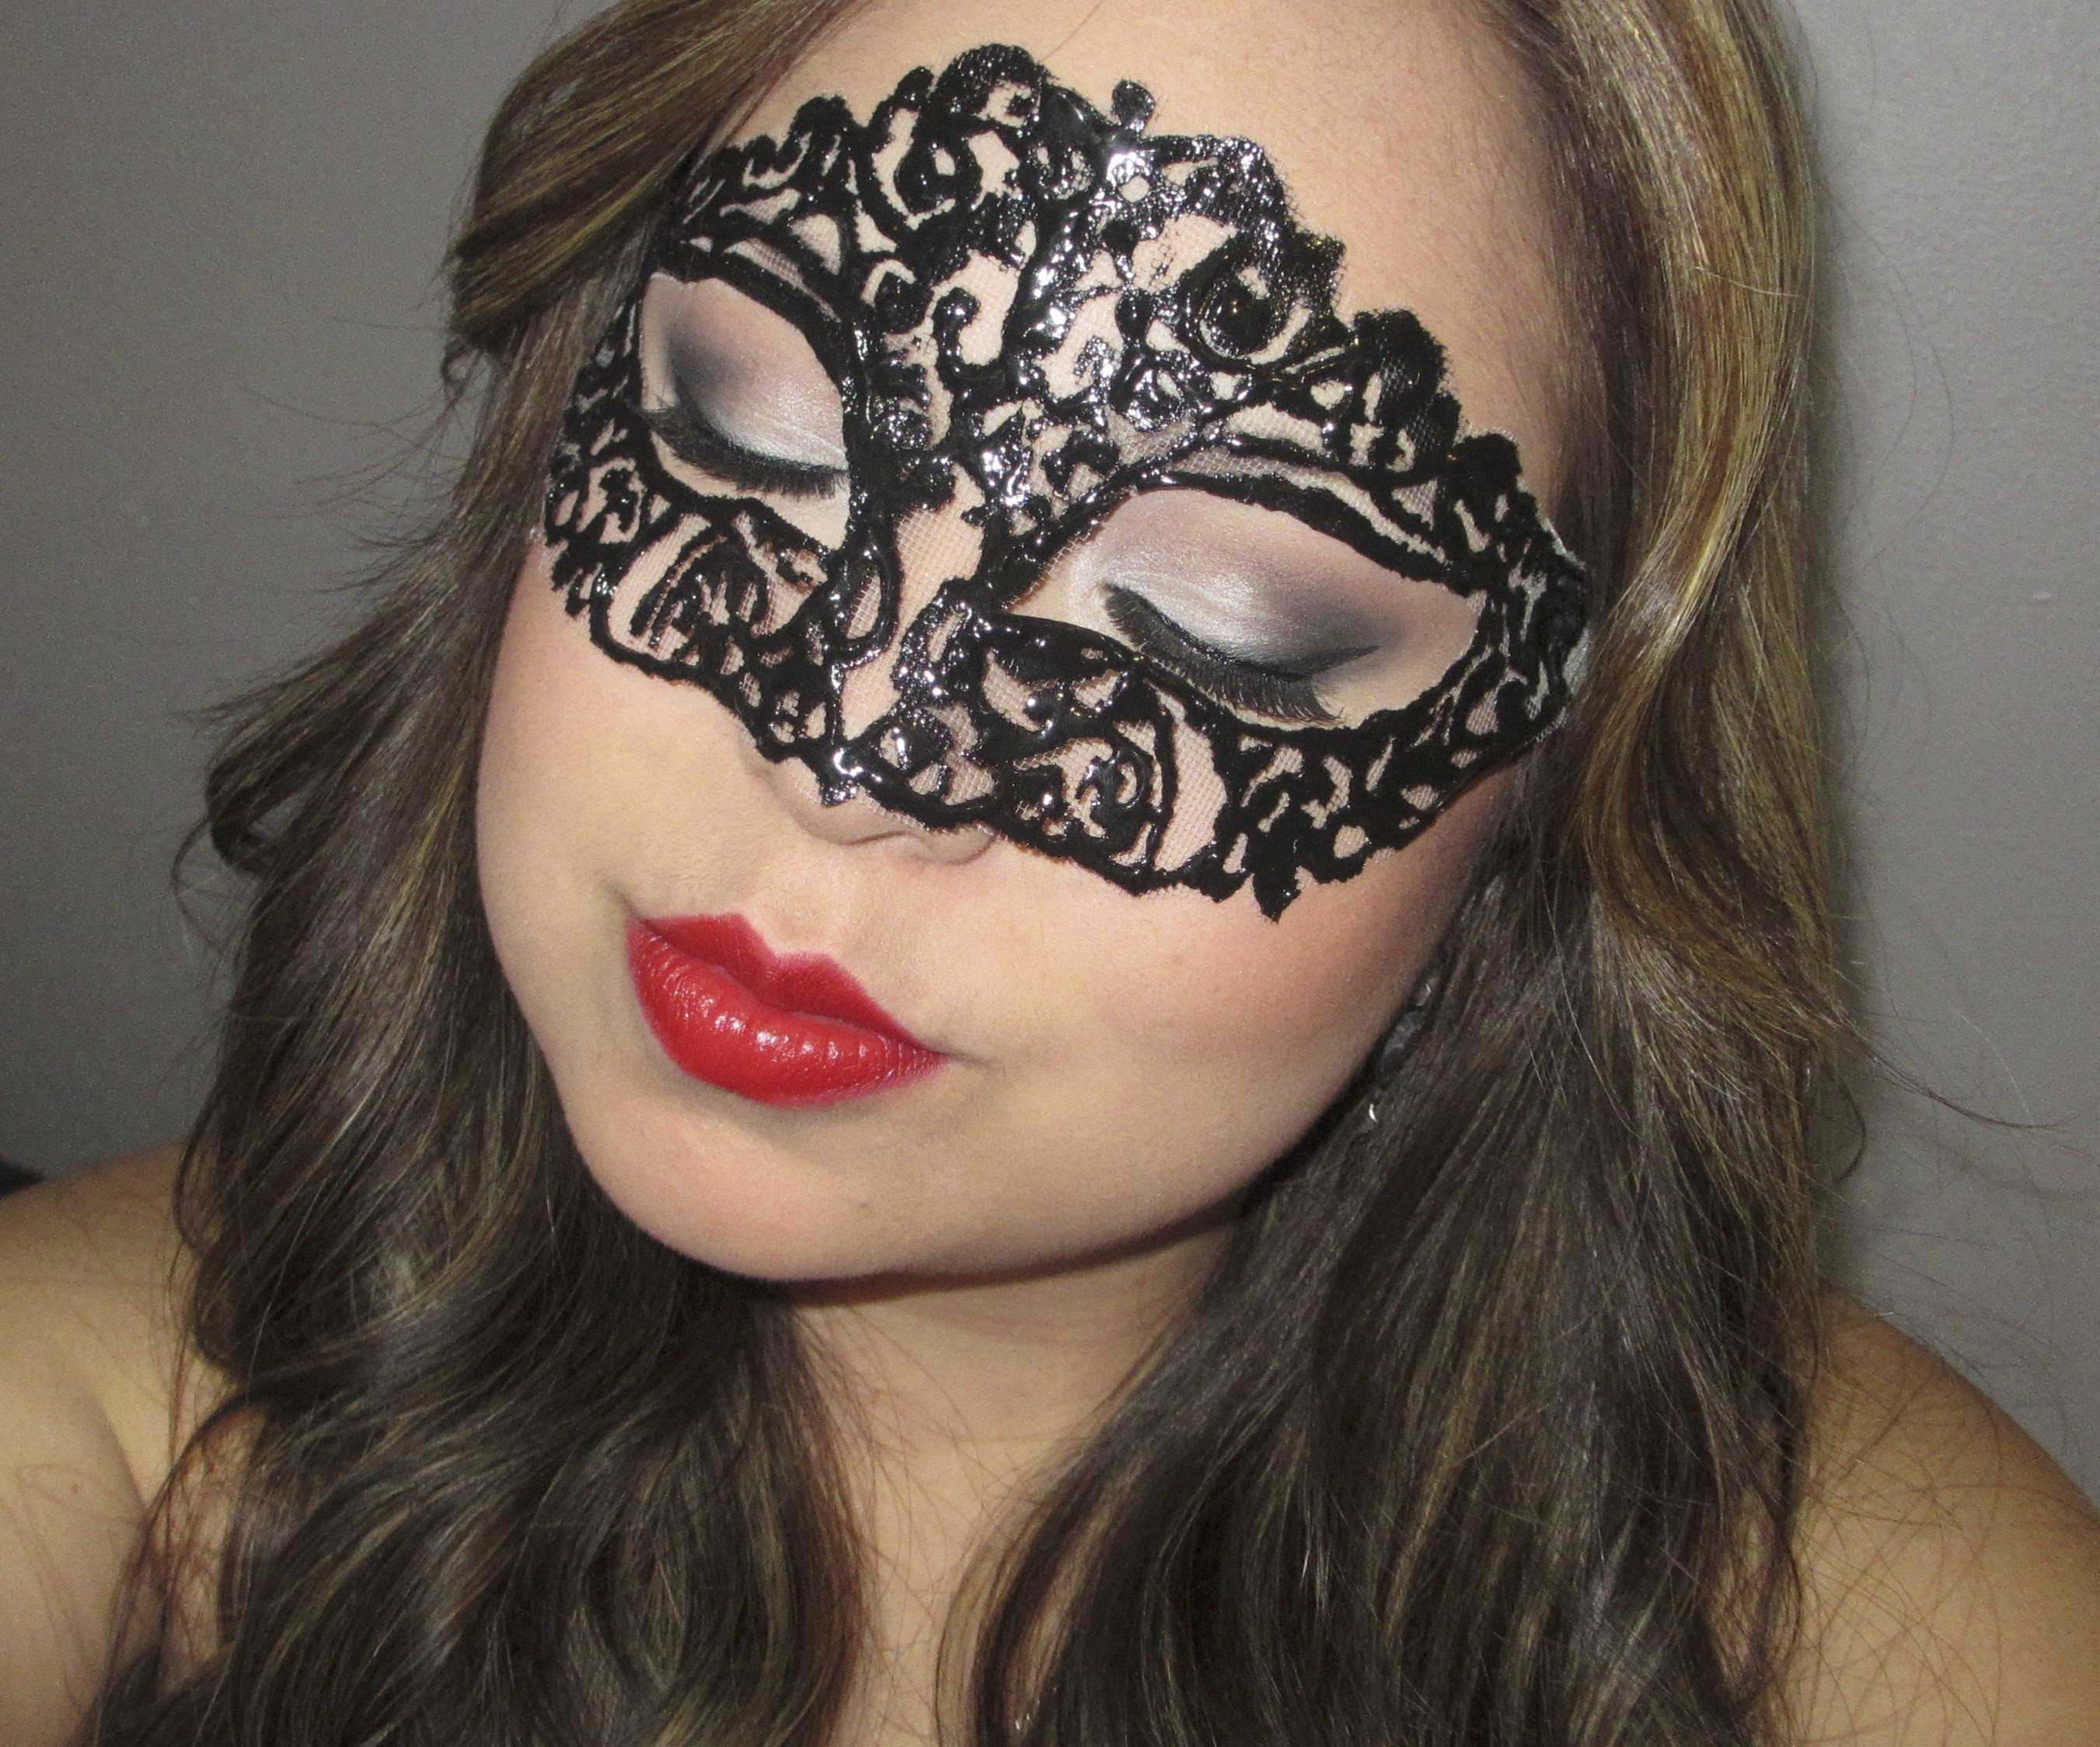 DYI: haz tu propio antifaz. Make your own masquerade